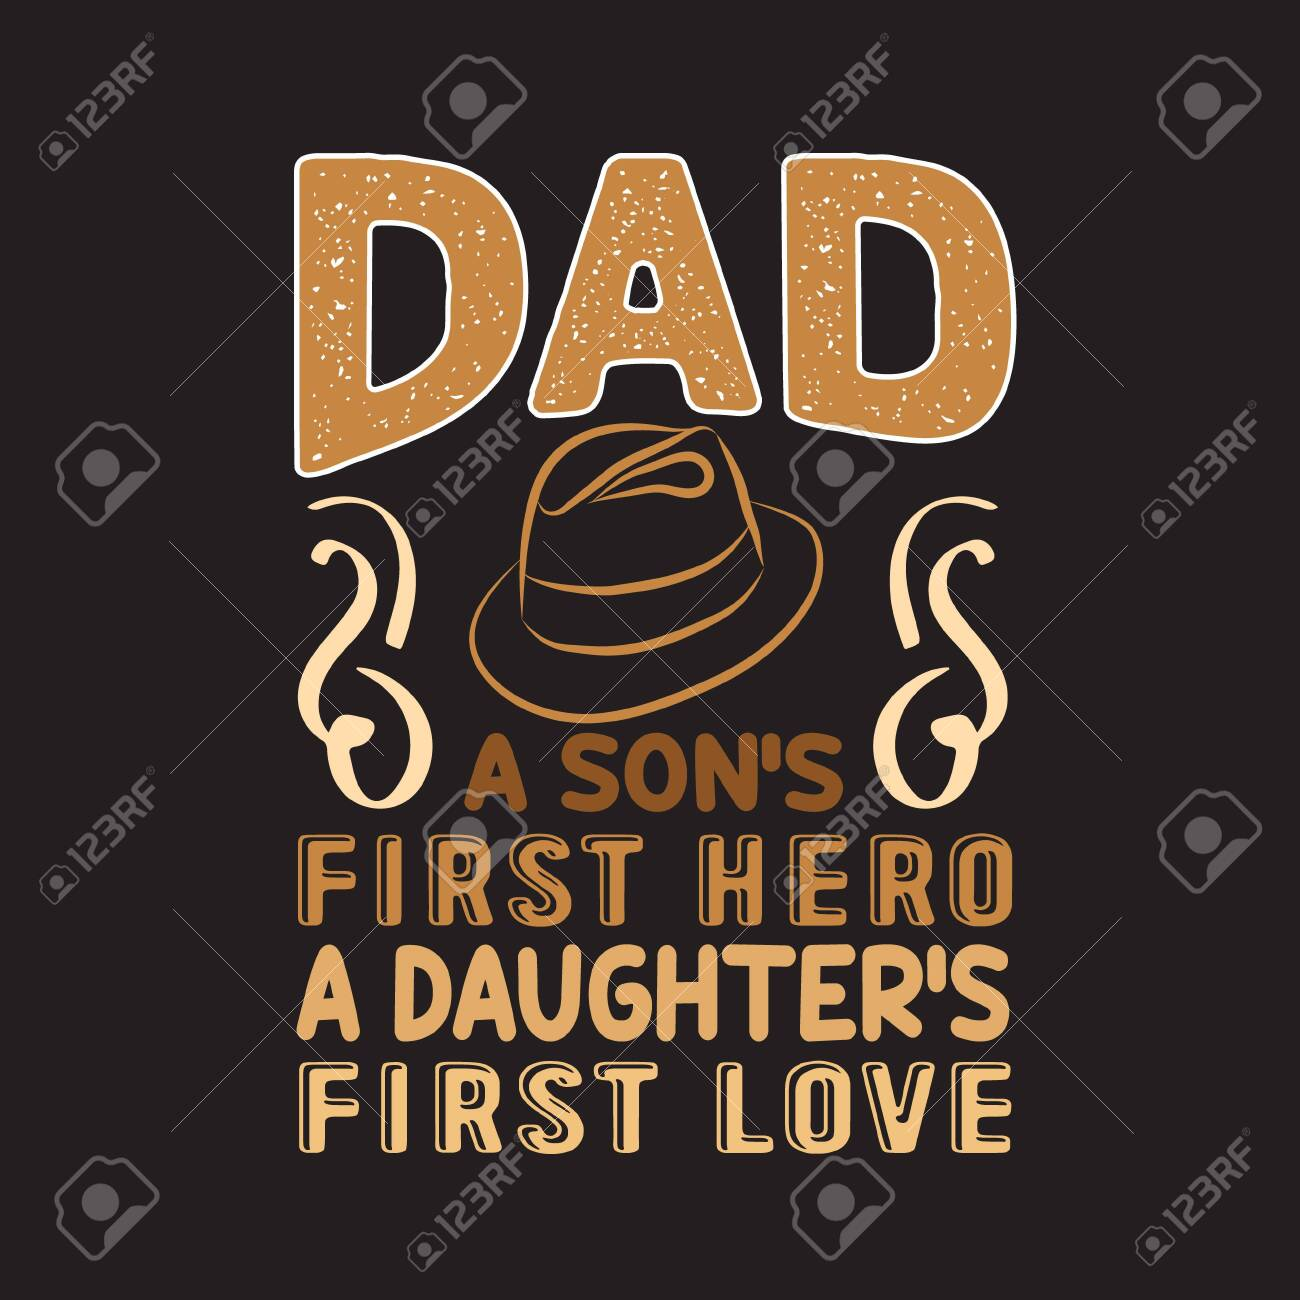 Saying about a daughter